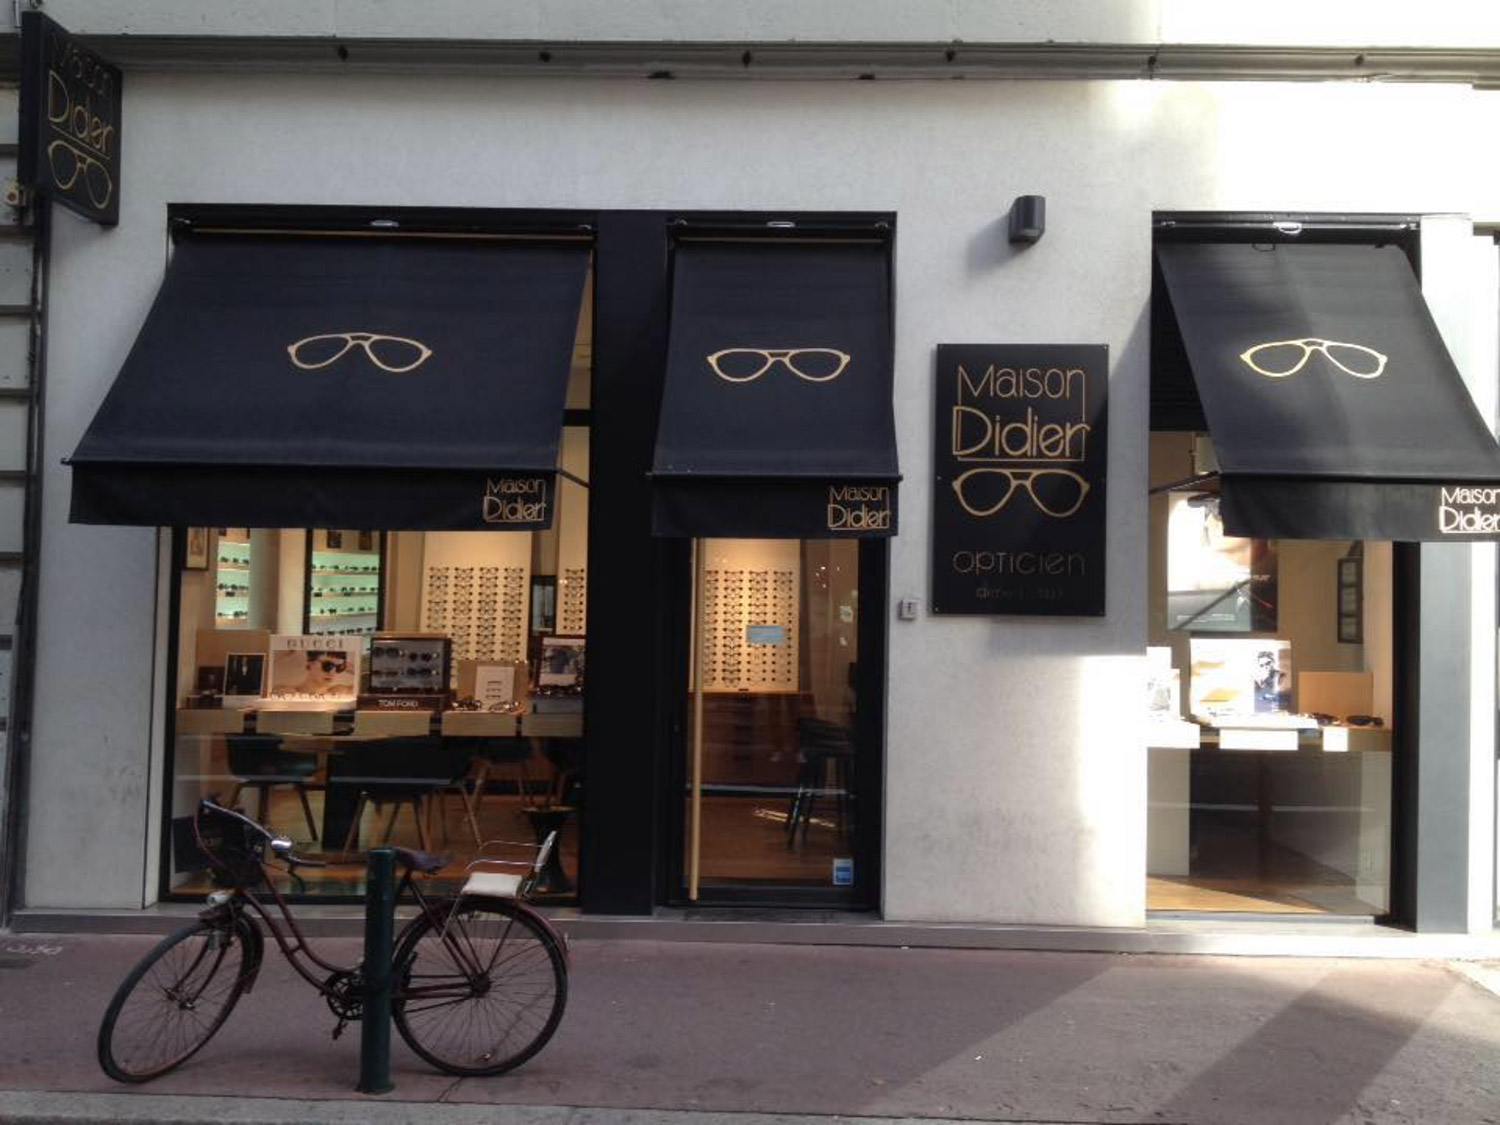 Maison didier opticien toulouse for Maison de l environnement toulouse